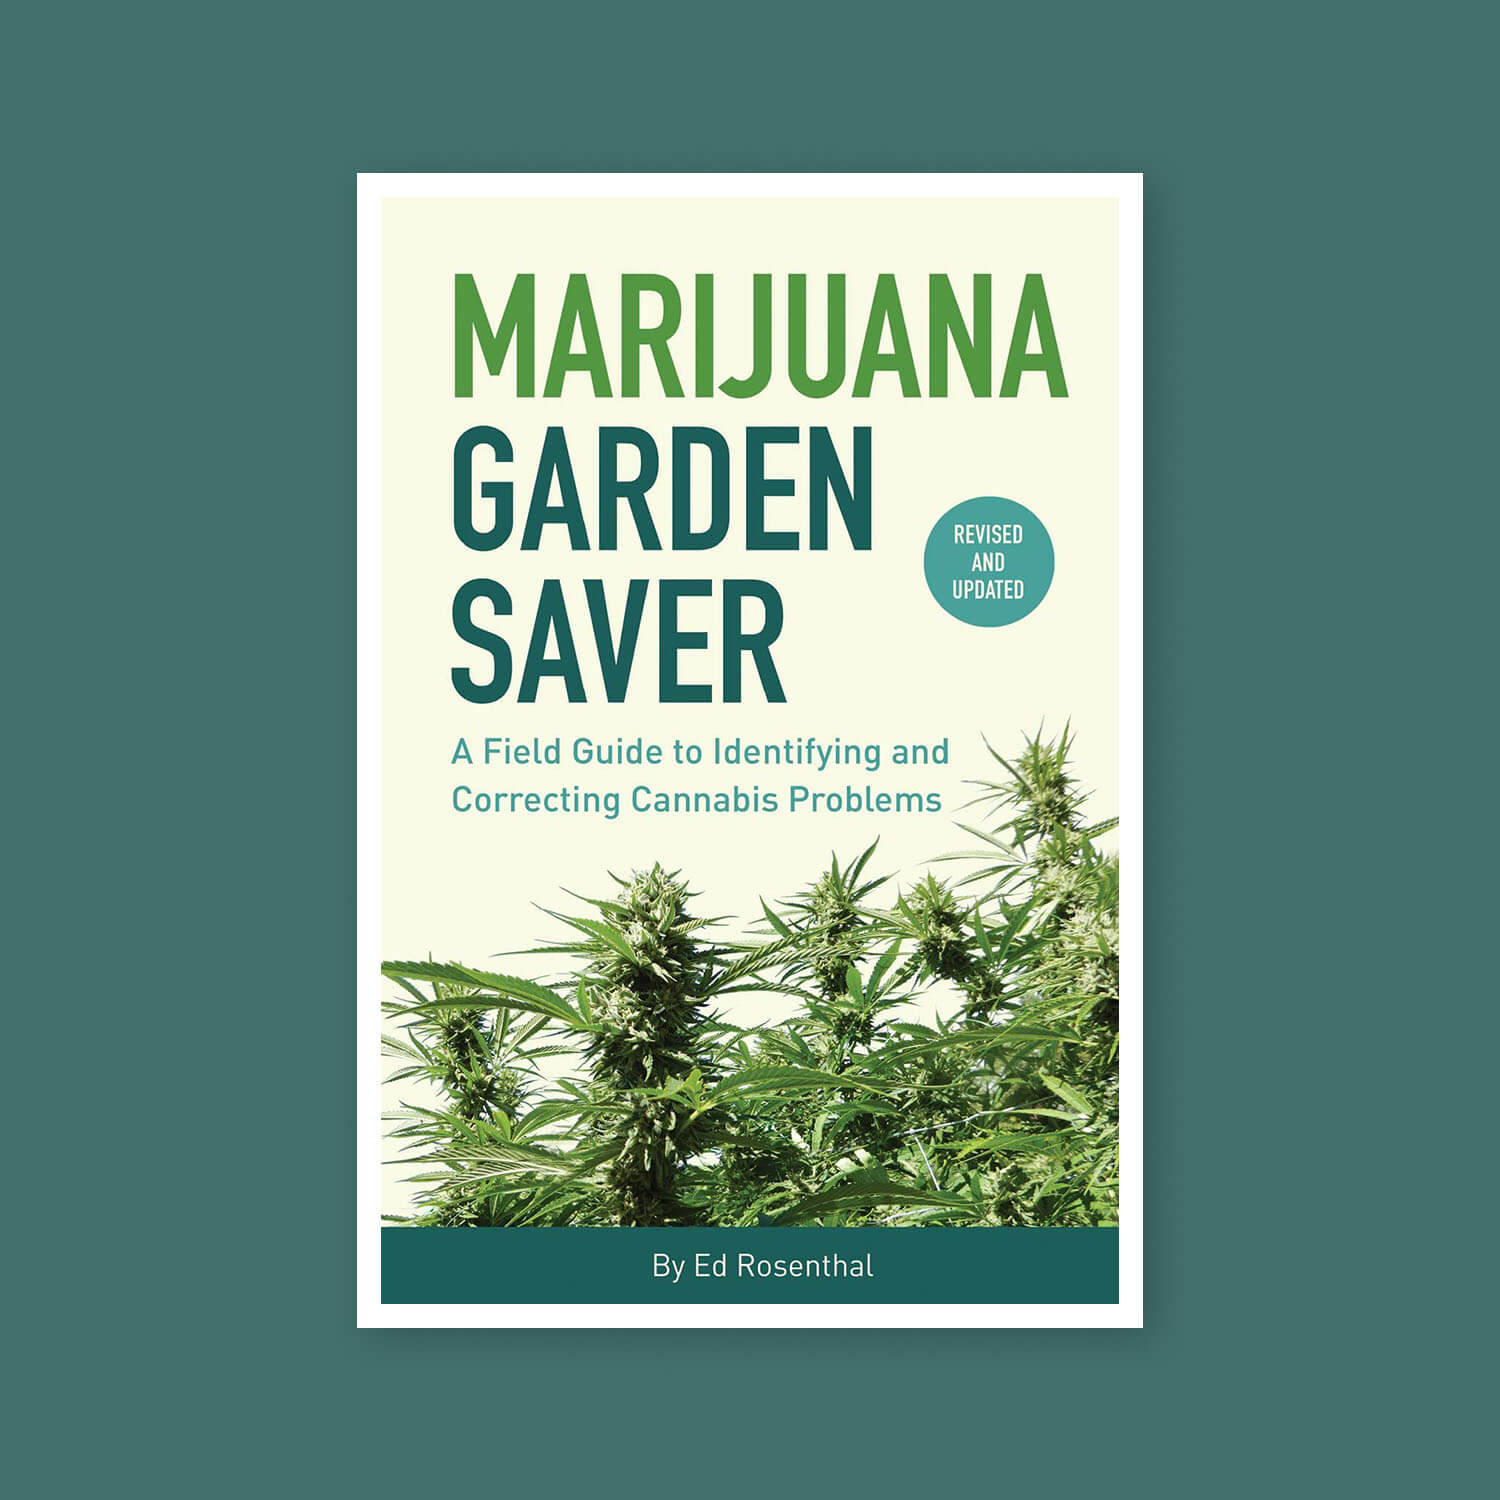 Marijuana garden saver - Goldleaf bookshelf